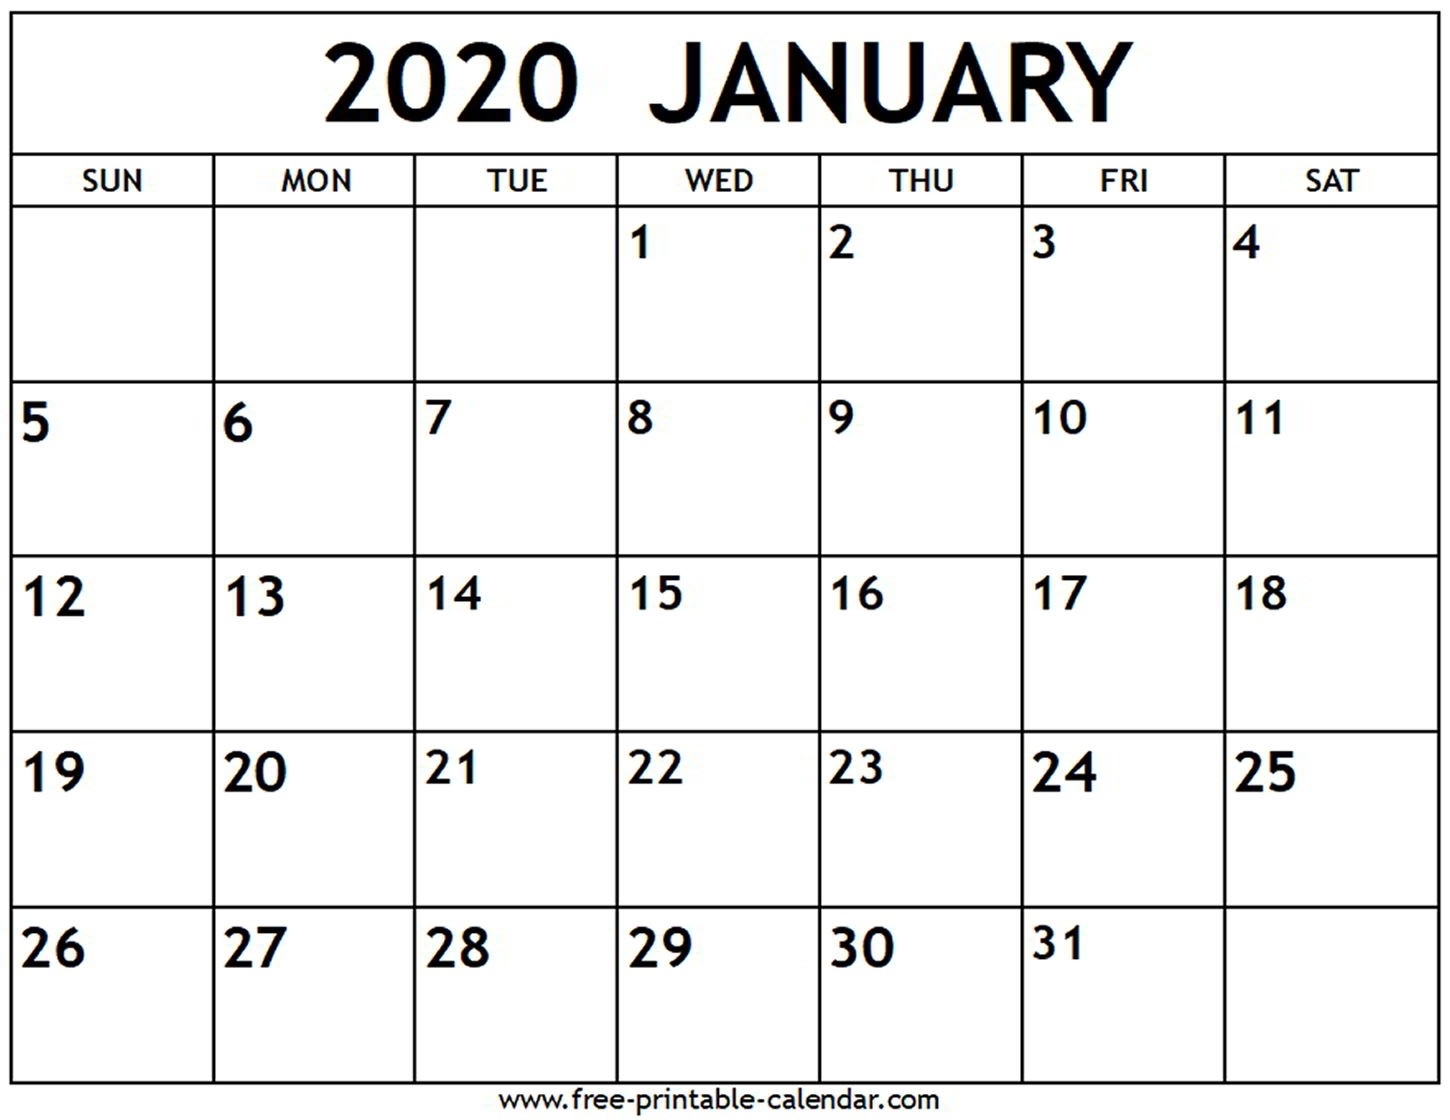 January 2020 Calendar - Free-Printable-Calendar  Calendar Print Off